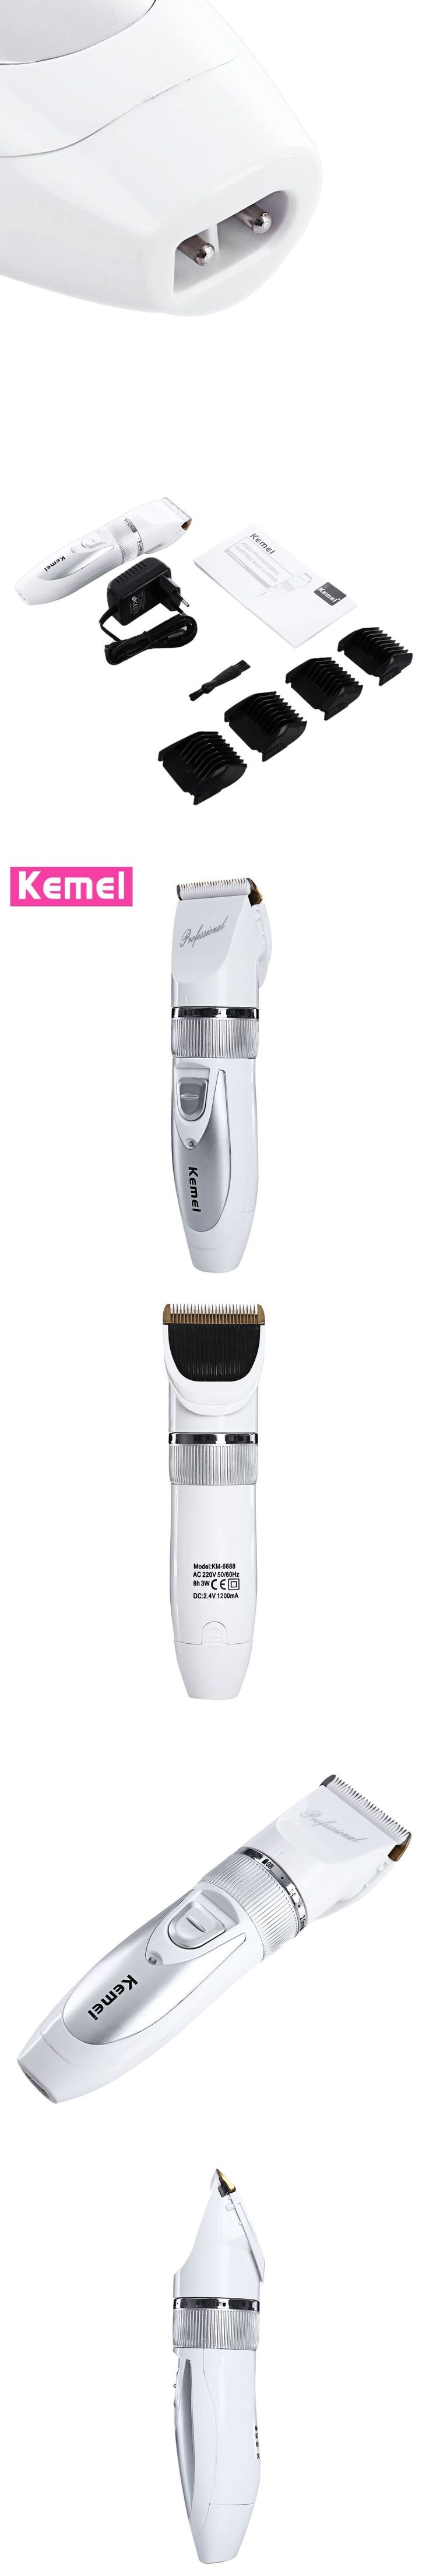 KEMEI-6688 Rechargeable Hair Trimmer Clipper Shaver Cutter Styling Kit for Men Hair Trimmers Hair Cutting Machine Beards #hairtrimmer